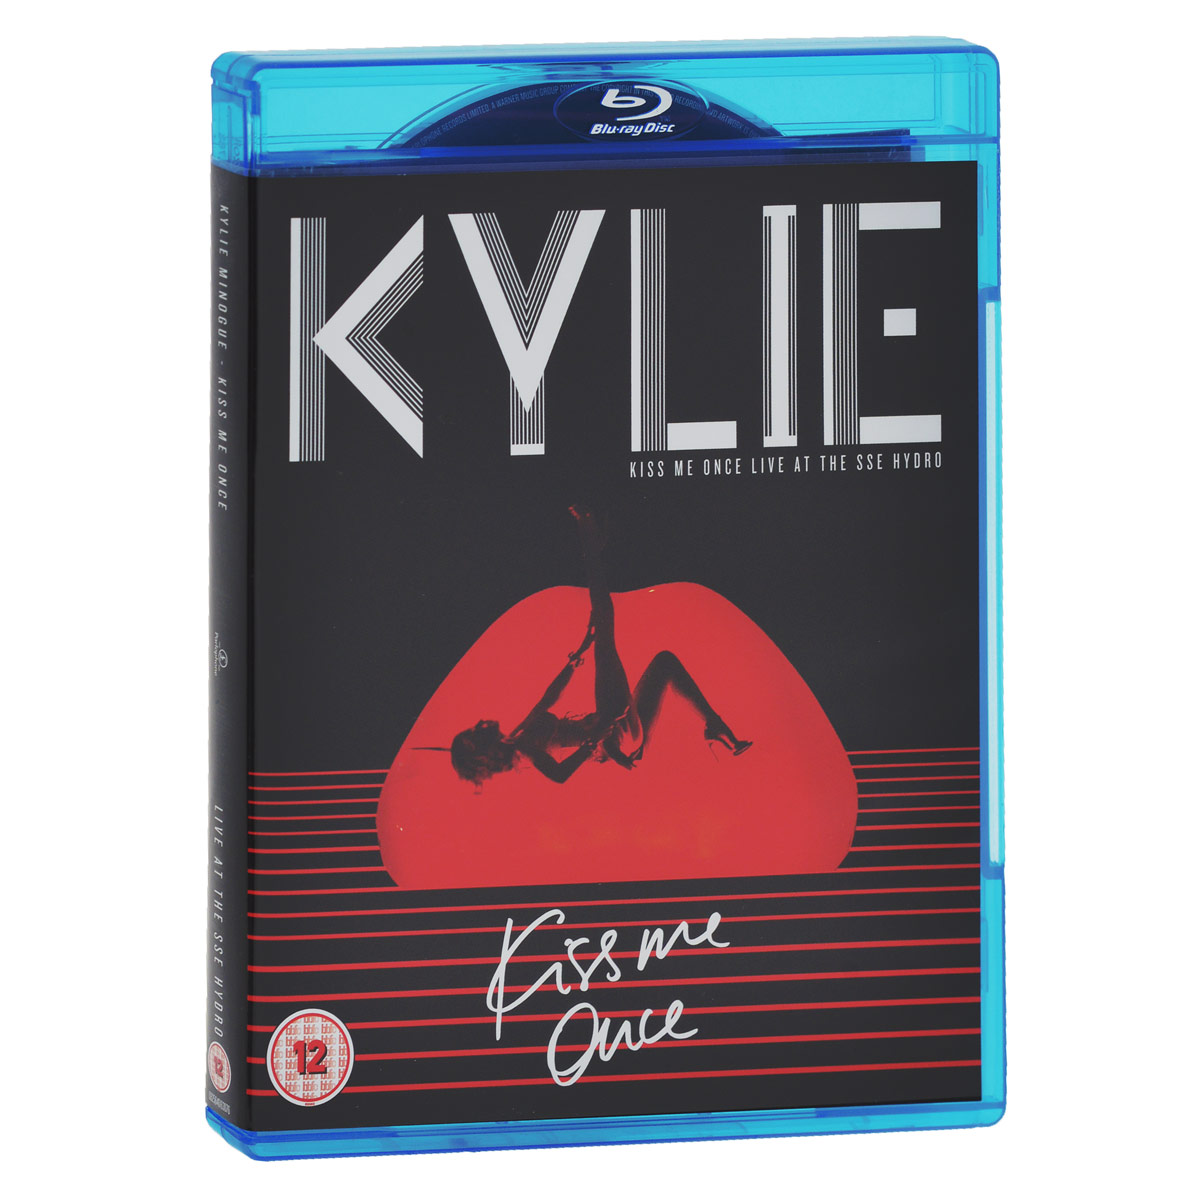 Кайли Миноуг Kylie Minogue. Kiss Me Once Live At The SSE Hydro (2 CD + Blu-ray)